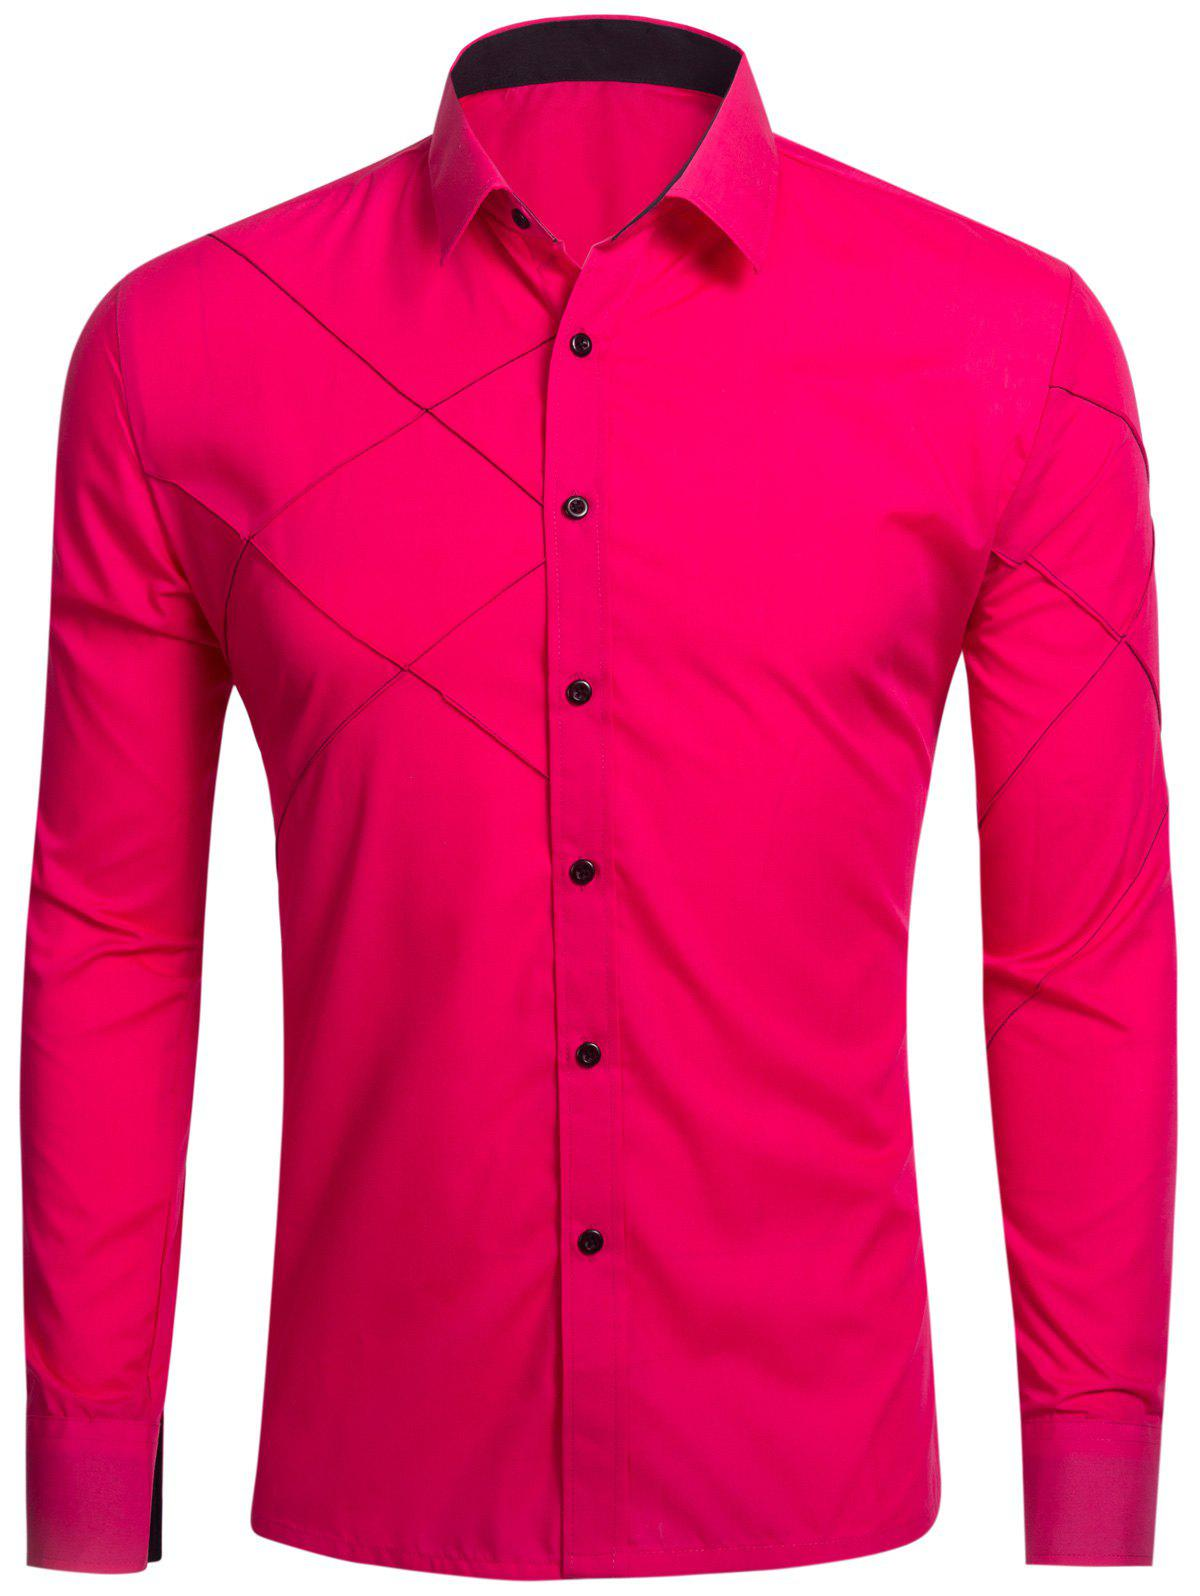 Piquez à manches longues Button Up Shirt - Rose Rouge L